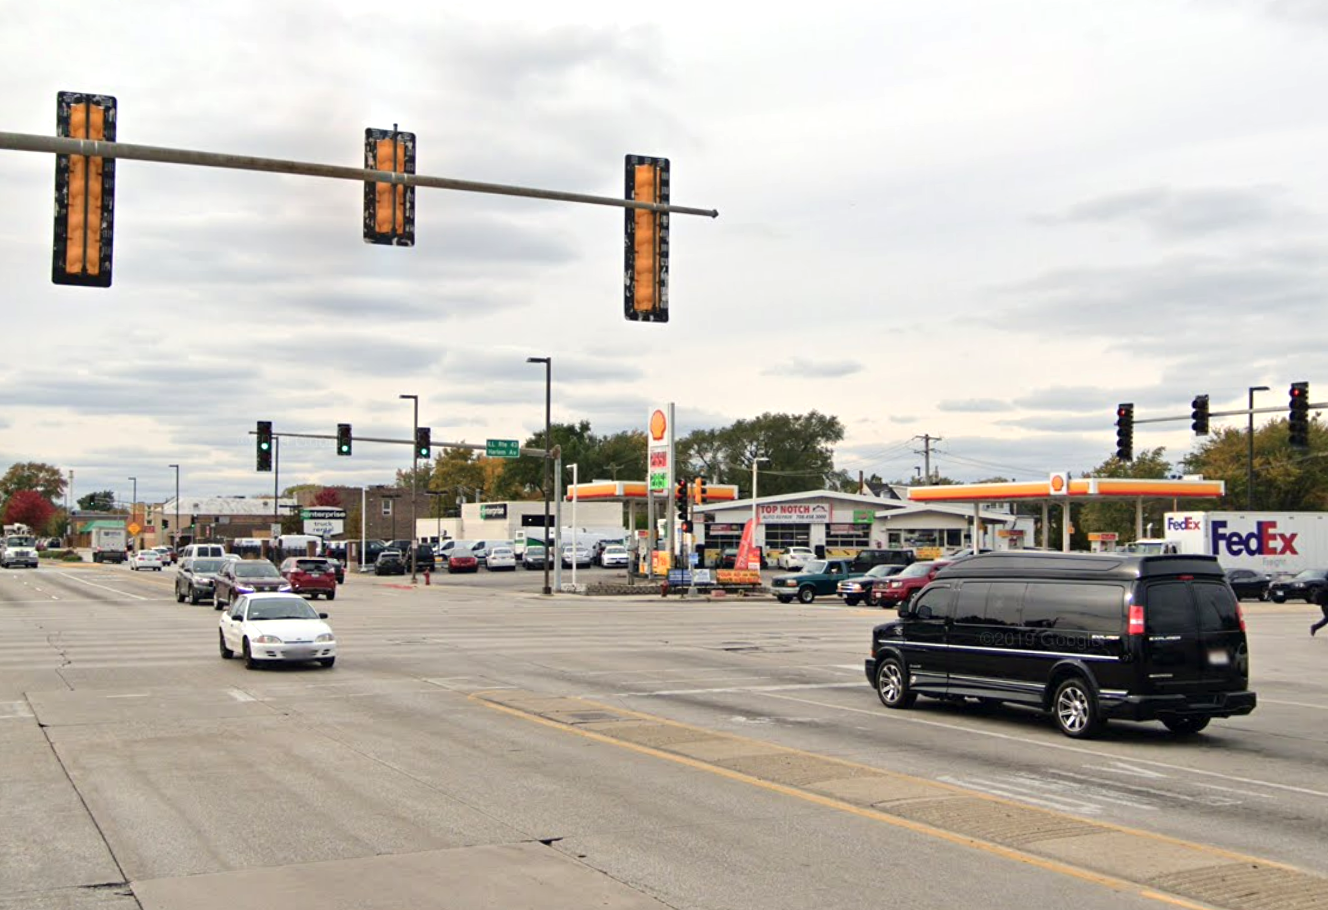 A man riding a motorcycle died after crashing July 13, 2020, in the 6300 block of South Harlem Avenue.